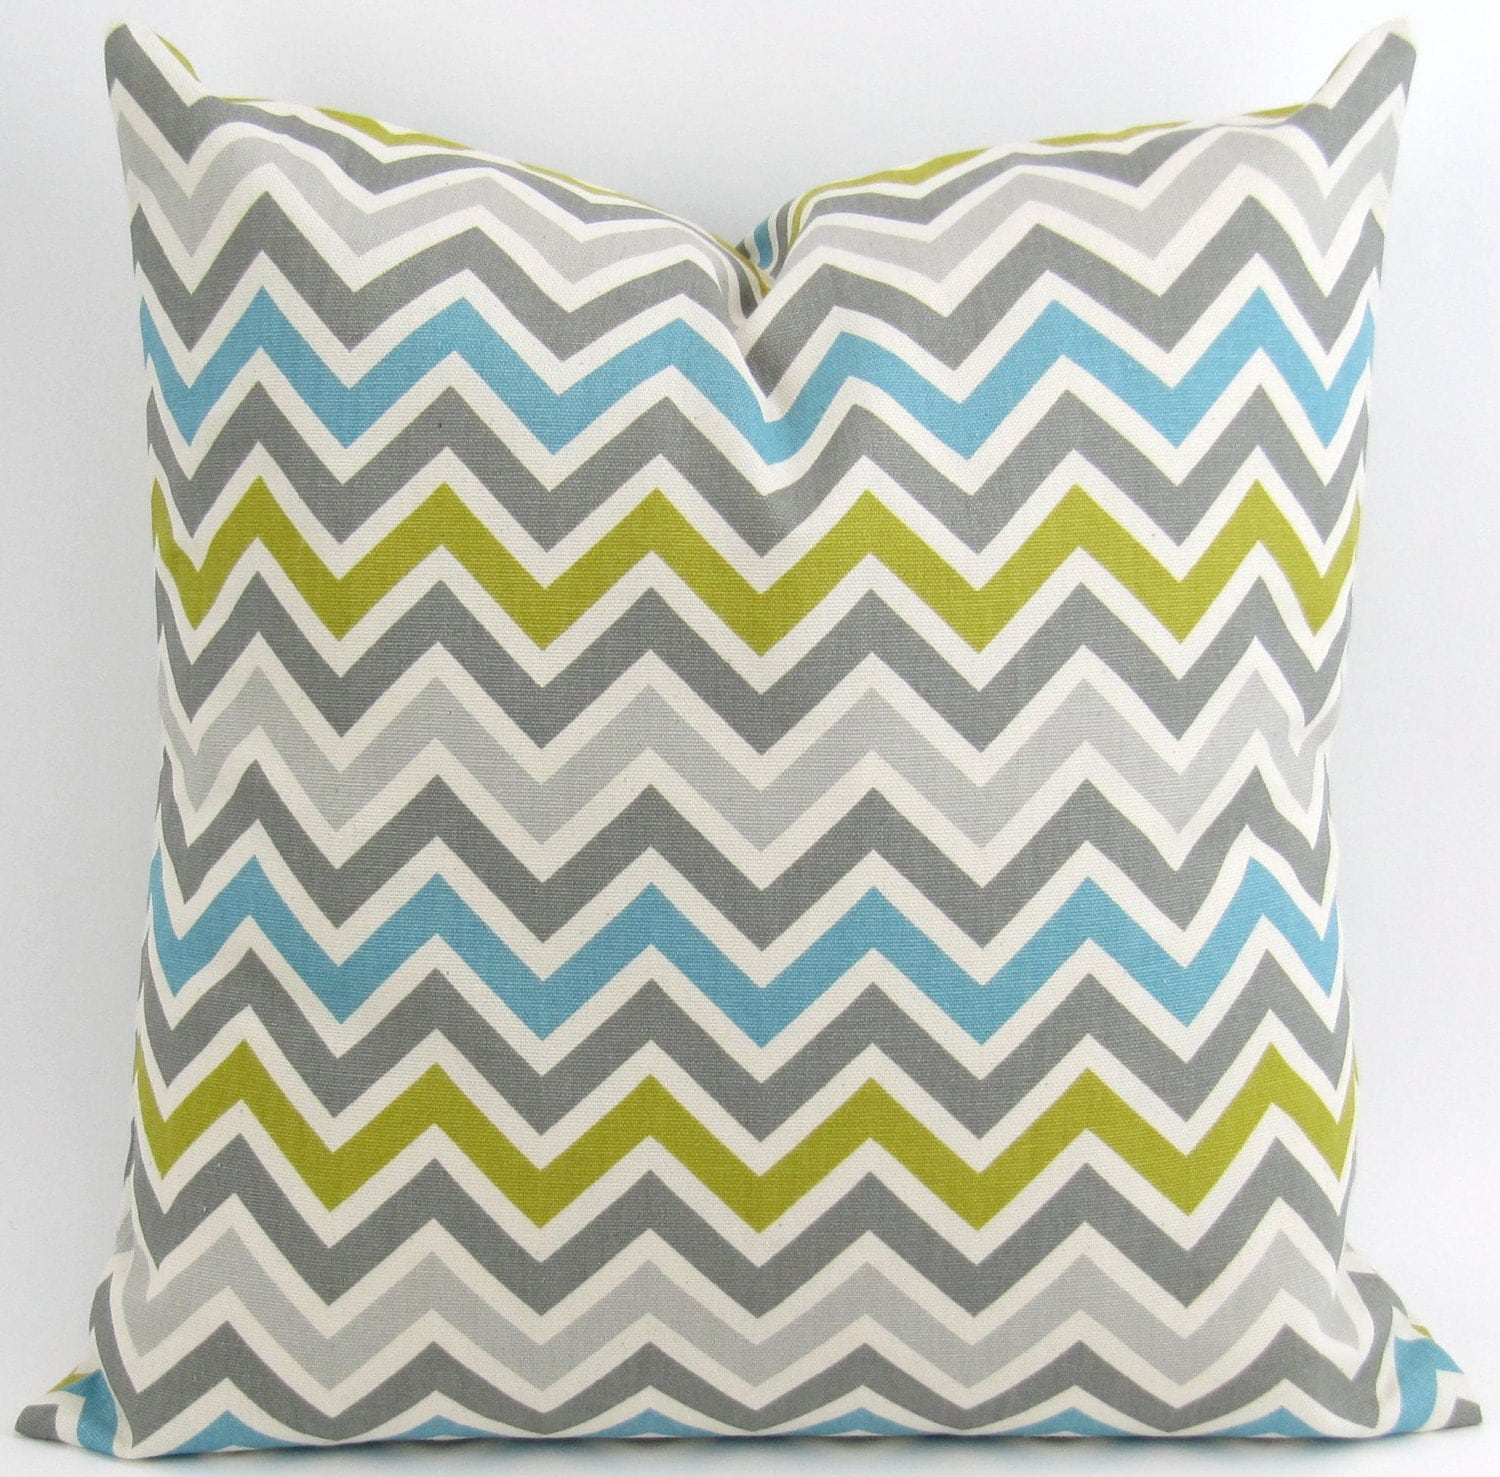 Decorative throw pillow cover 24x24 inch euro by DeliciousPillows